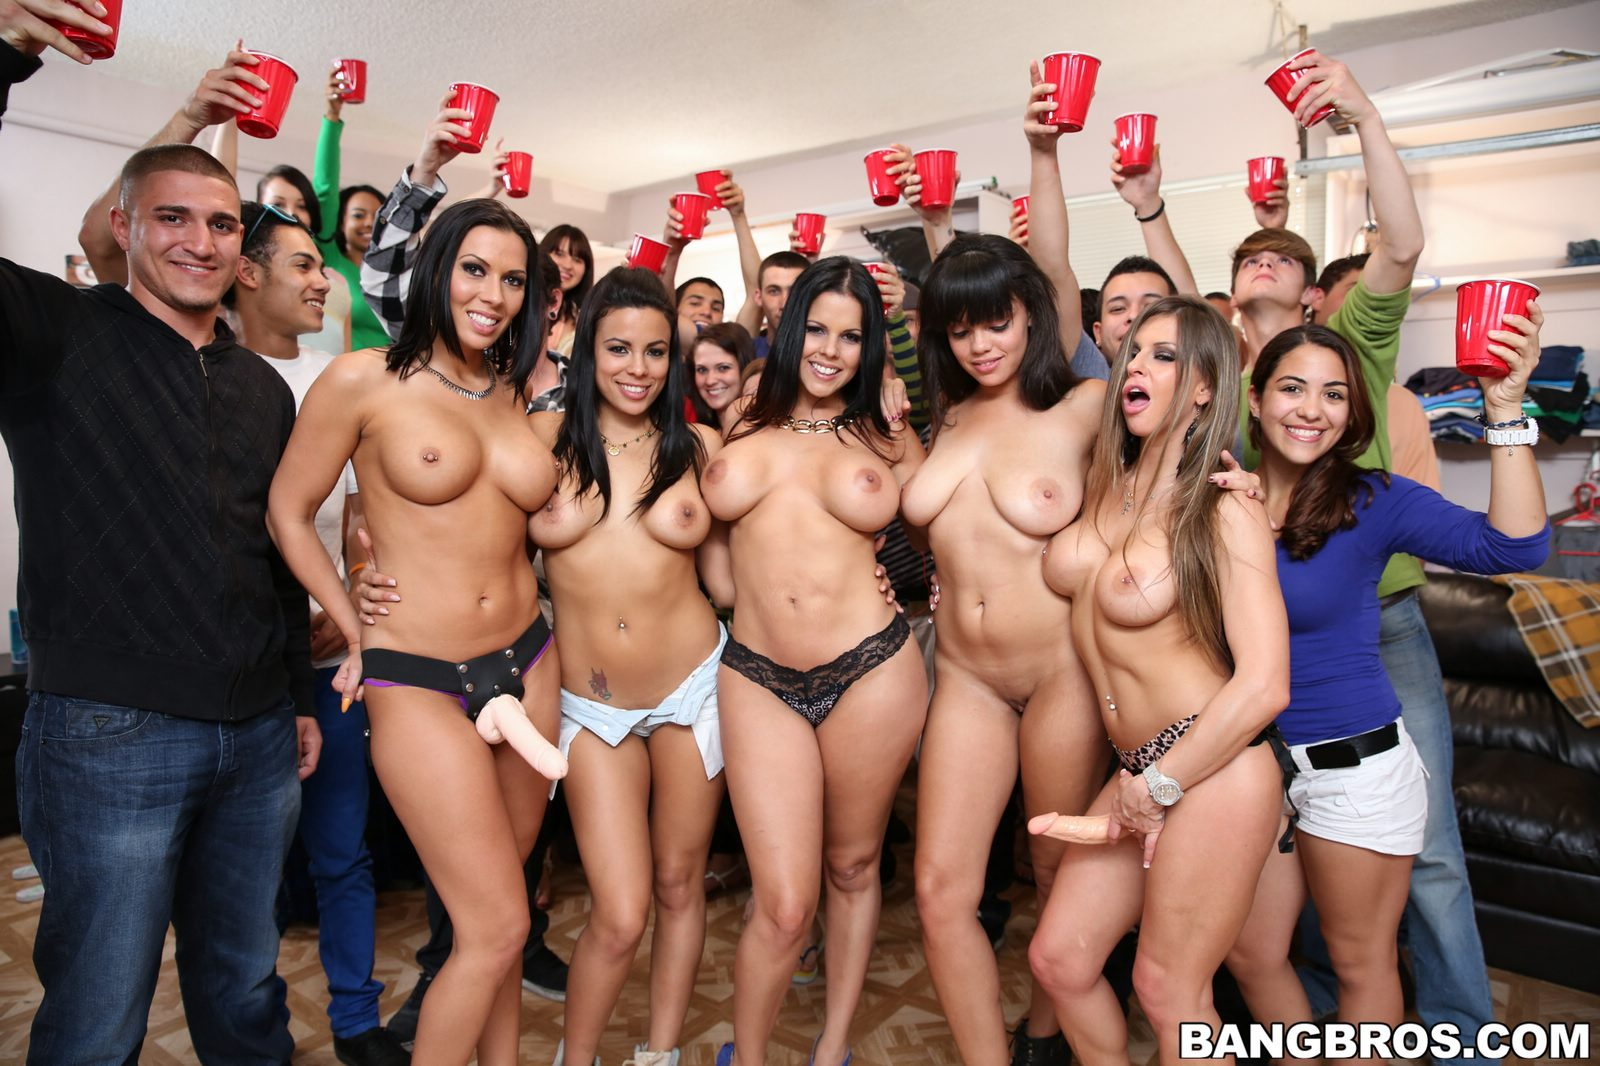 Group orgy picture